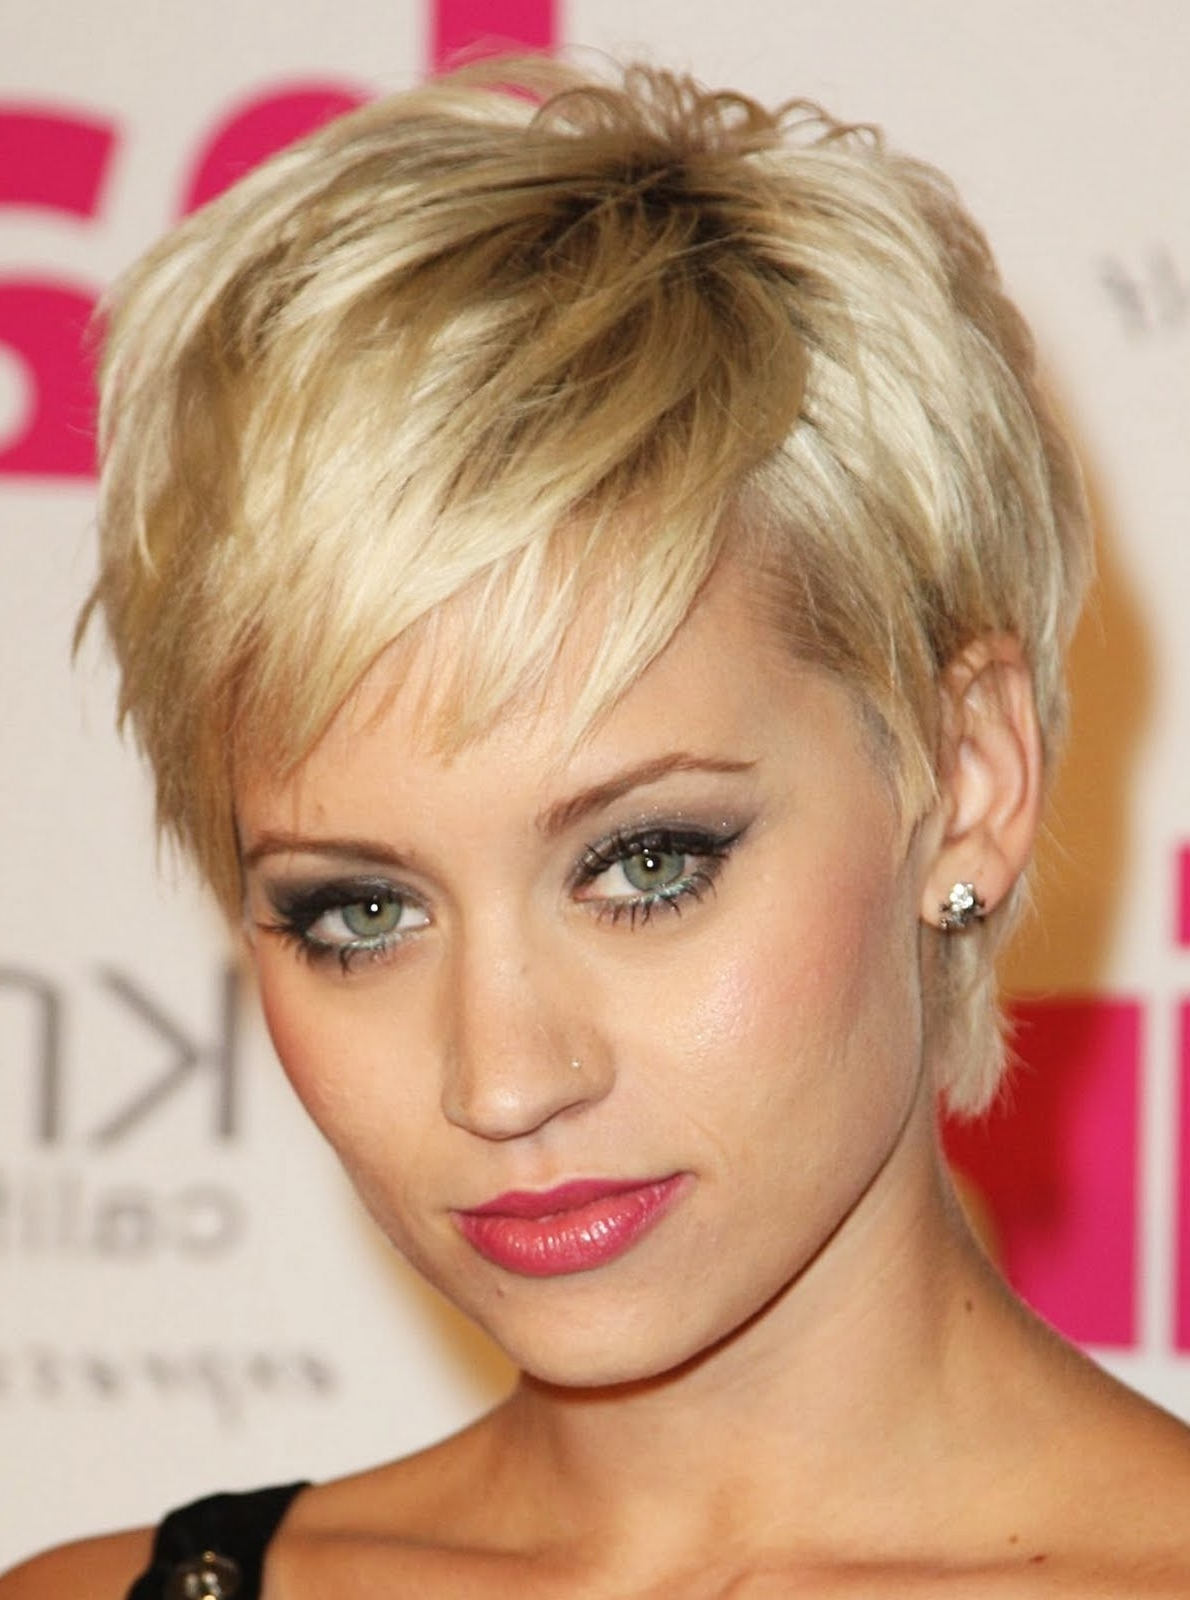 Long Pixie Haircut For Thin Hair With Recent Long Pixie Hairstyles For Thin Hair (View 8 of 15)